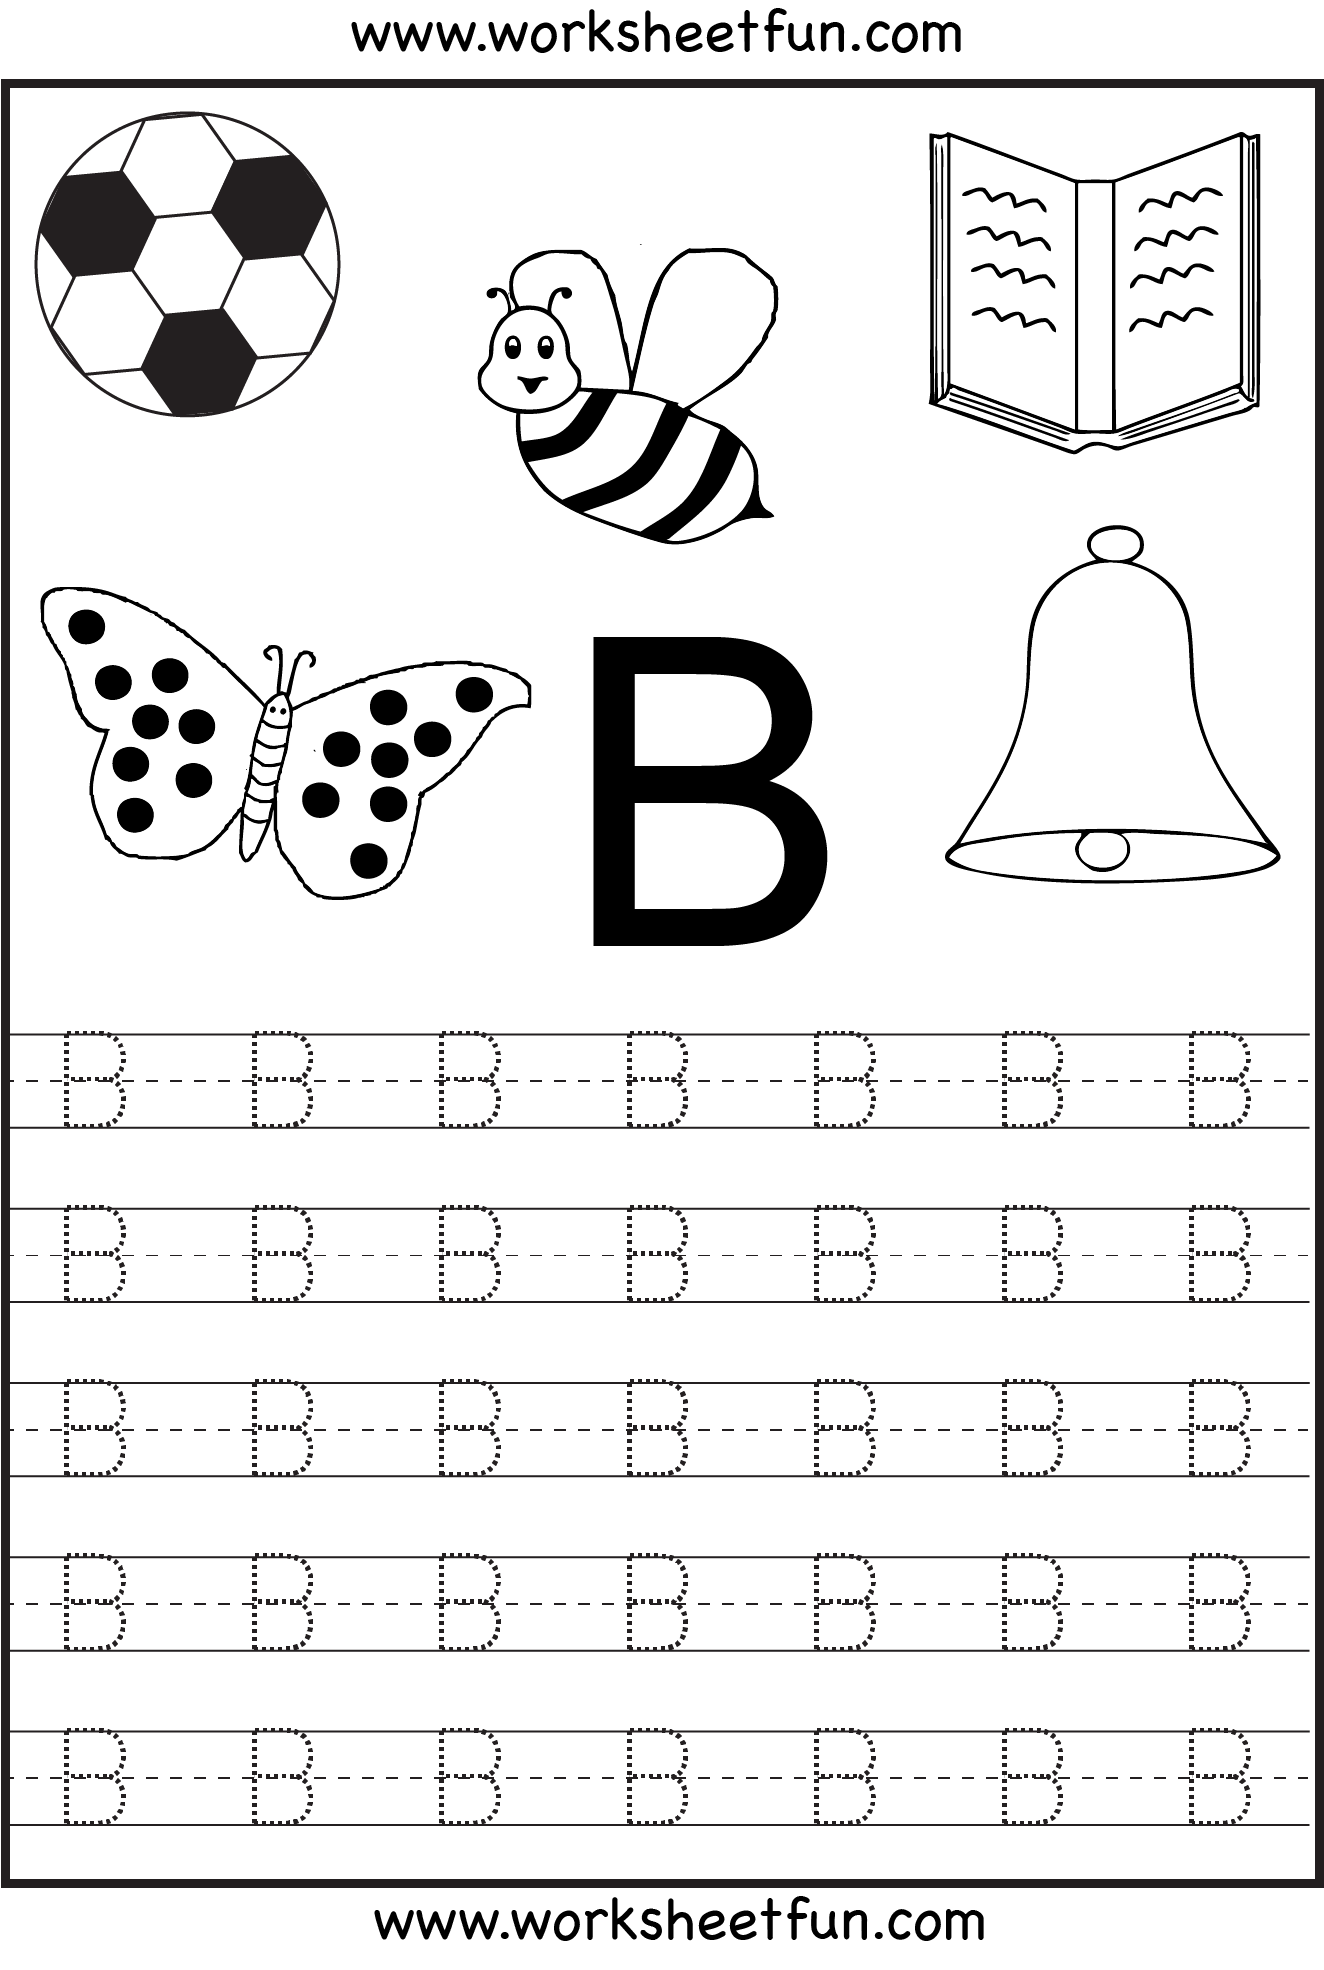 Worksheets Kindergarten Alphabet Tracing Worksheets free printable letter tracing worksheets for kindergarten 26 worksheets